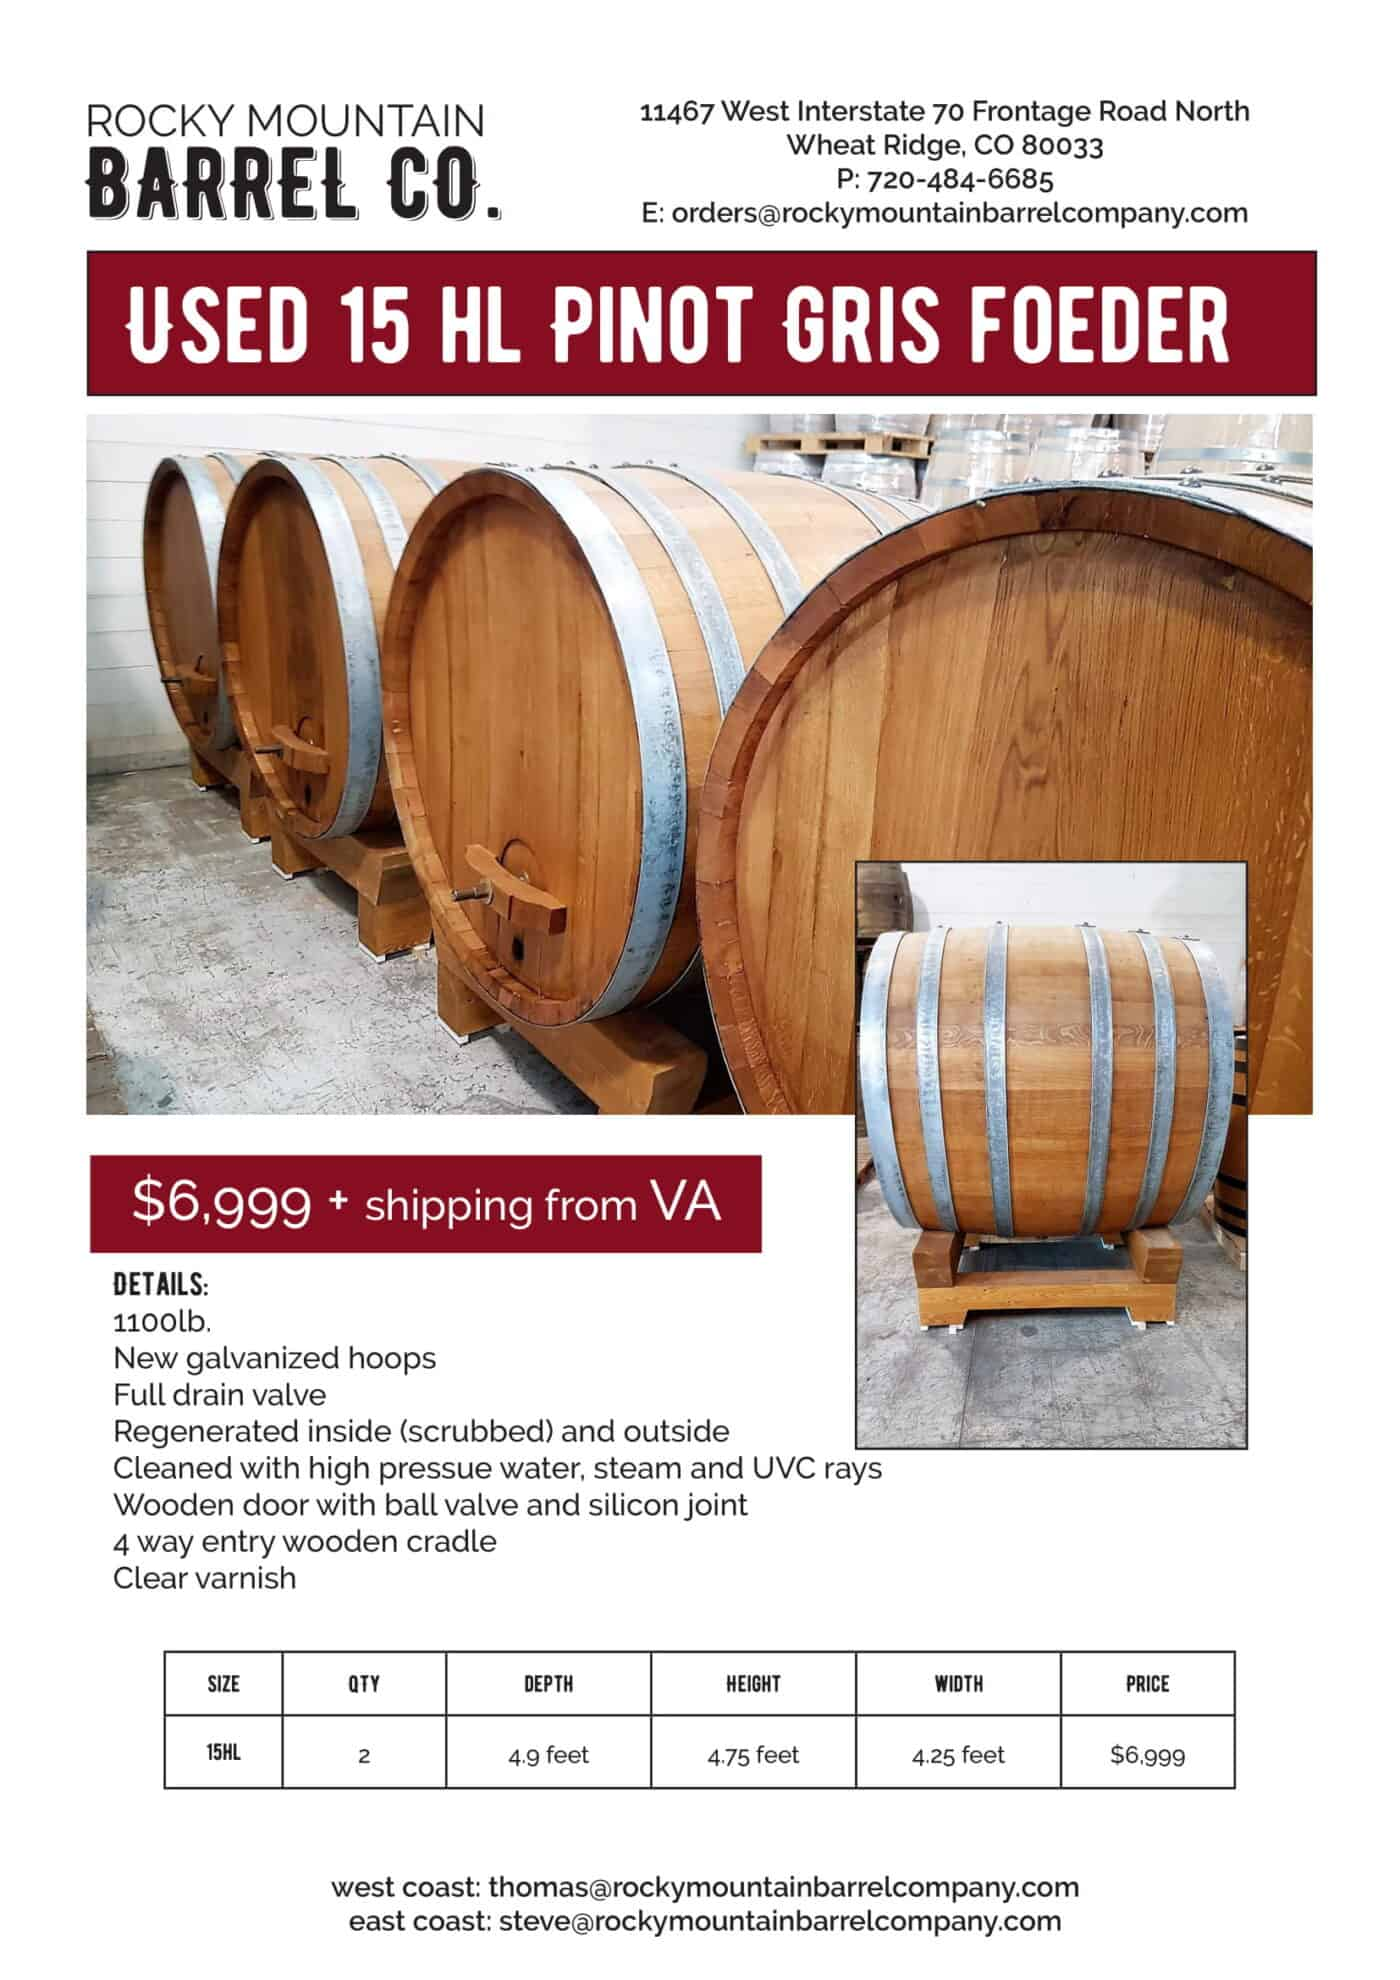 15hL PINOT GRIS FINISHED-1